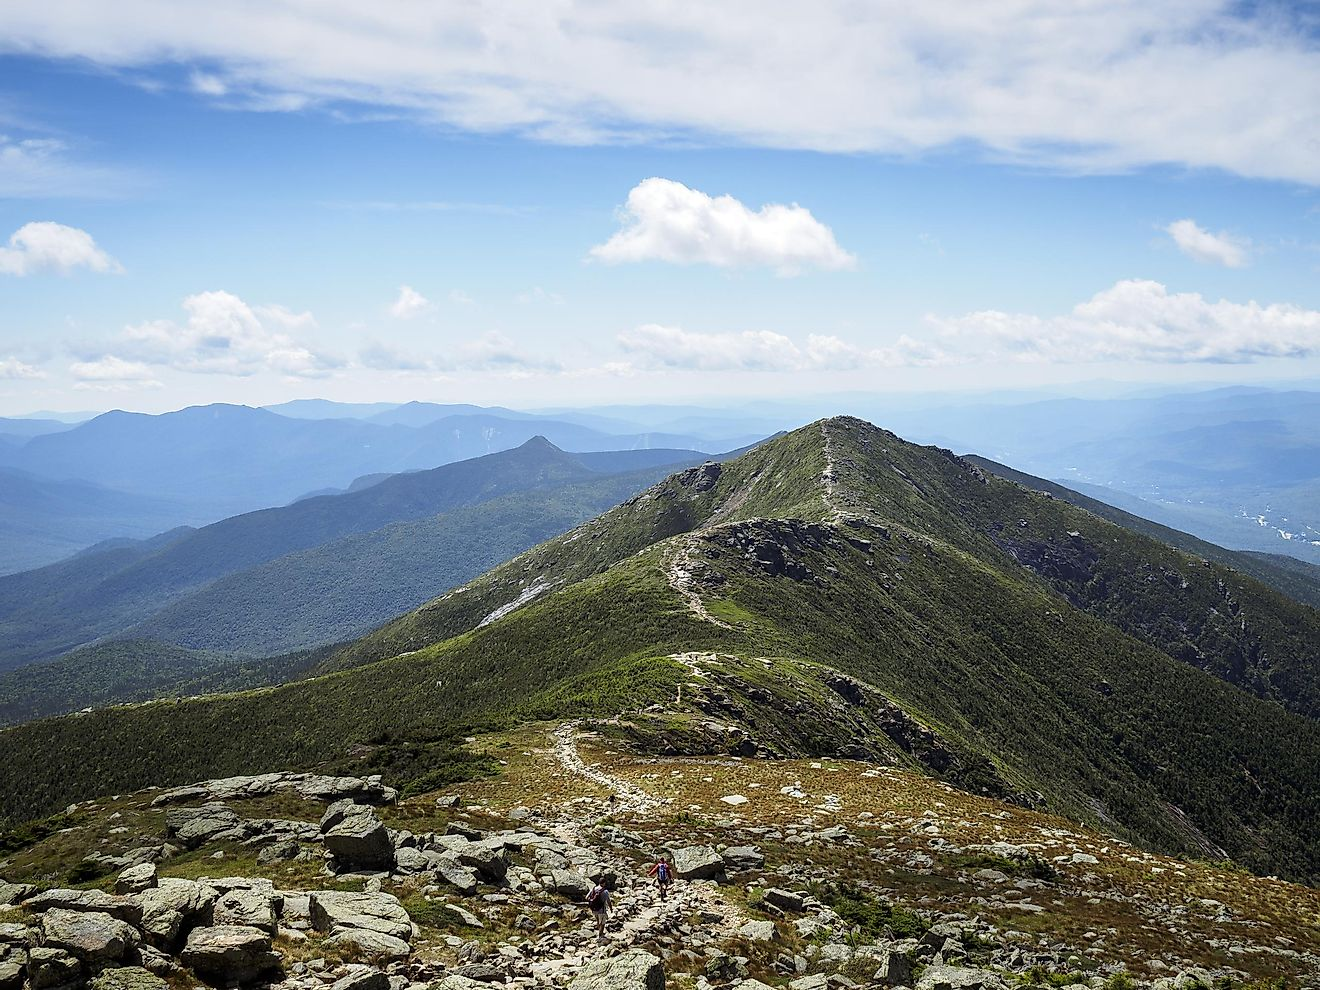 Appalachian Trail on a sunny day in White Mountains Franconia Ridge, New Hampshire